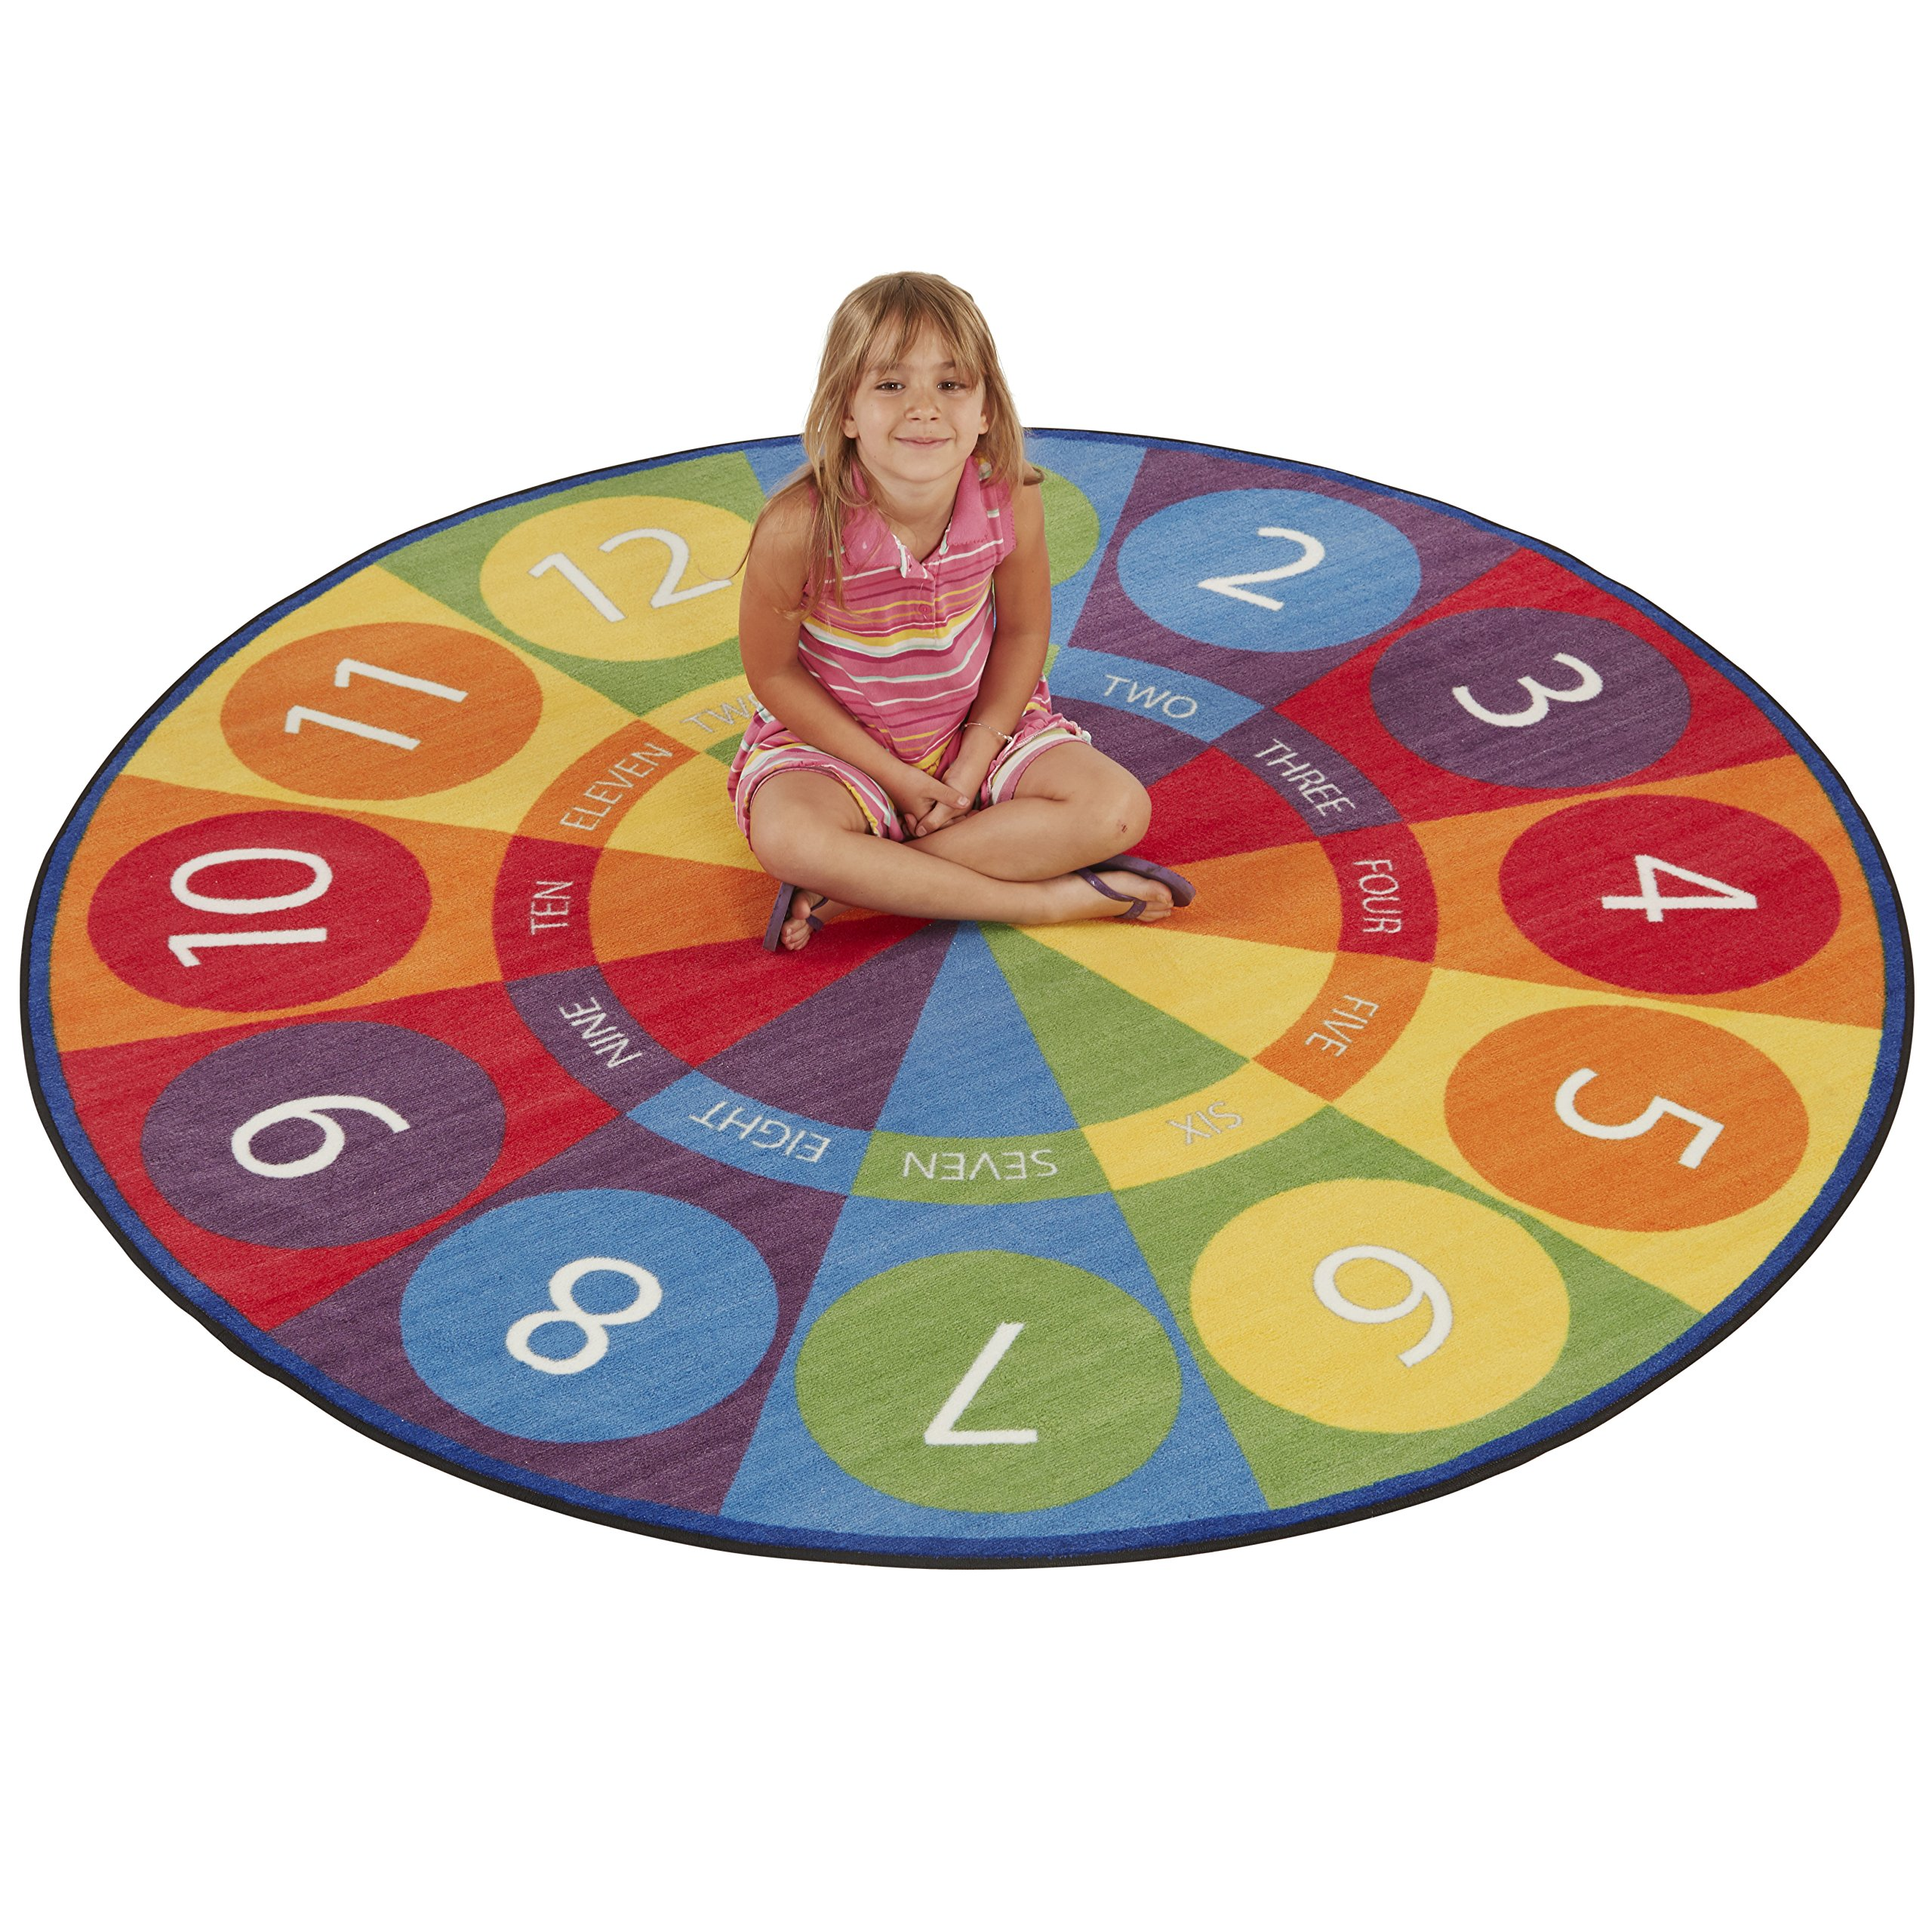 ECR4Kids Tick-Tock Clock Educational Circle Activity Rug for Children, School Classroom Learning Carpet, Round by ECR4Kids (Image #2)